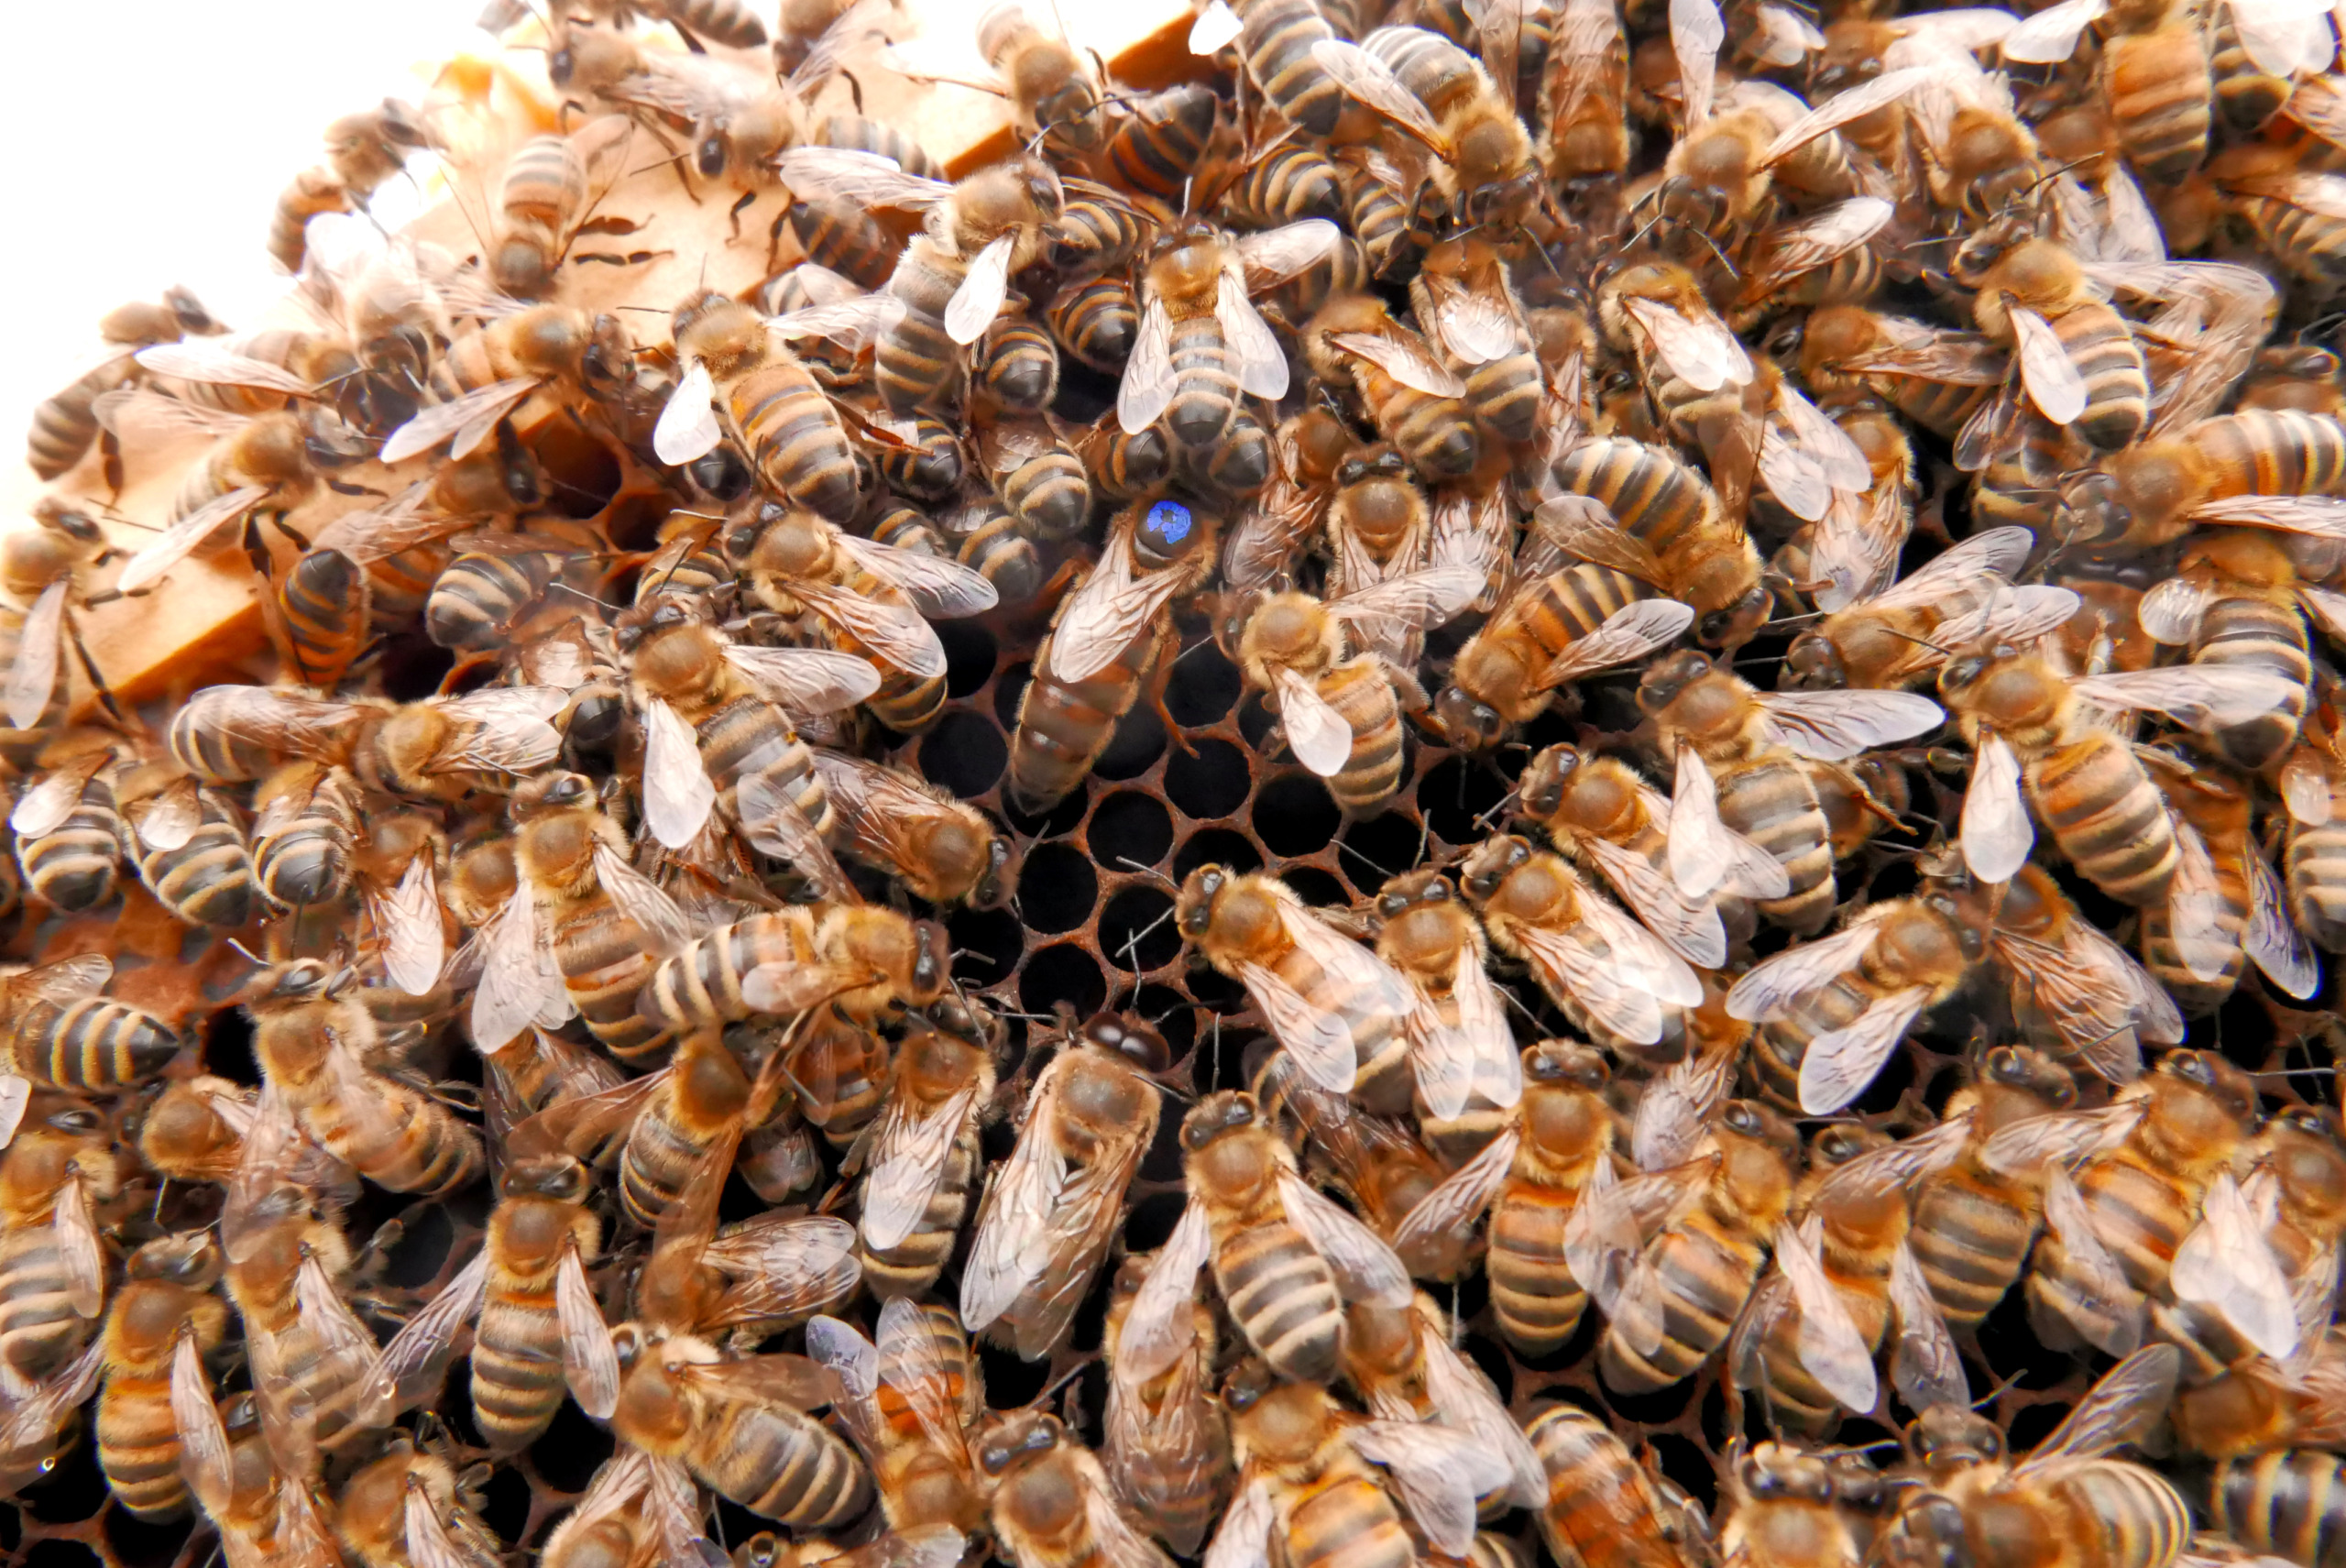 Buzzer-time! The queen bee in the middle with the blue dot